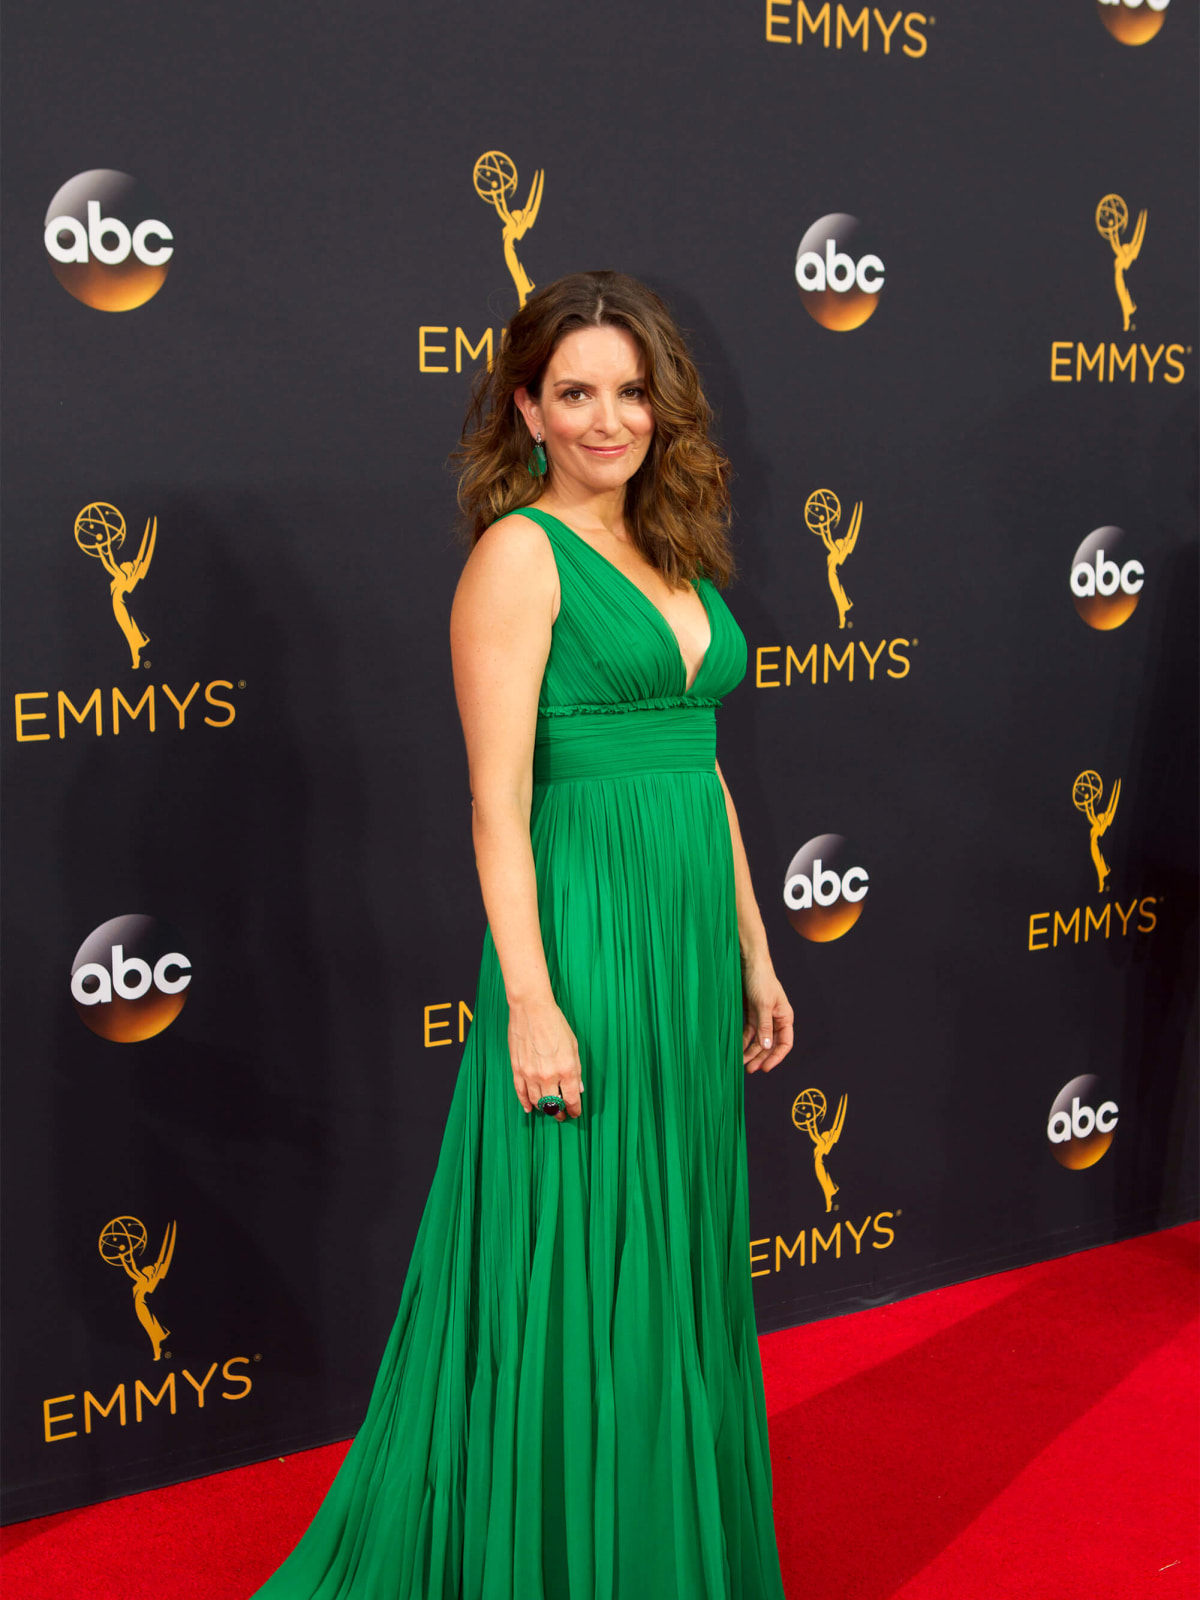 Tina Fey in green gown at Emmy Awards